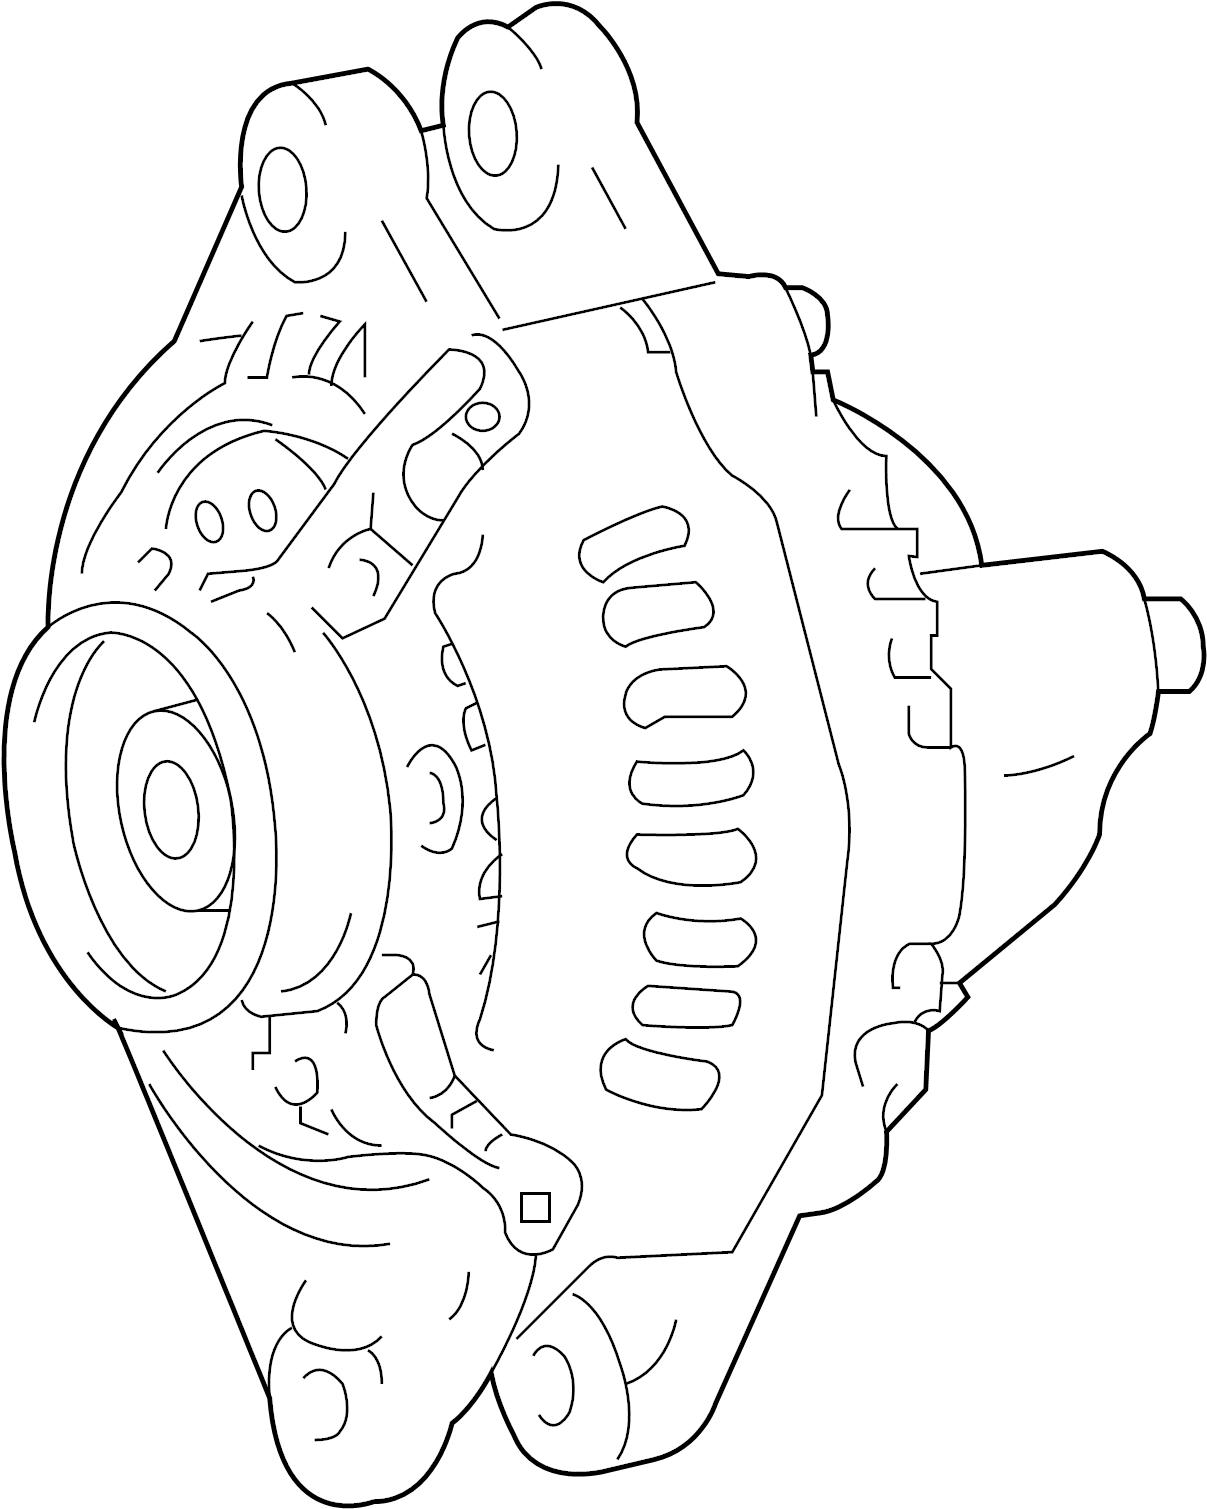 Kia Sorento Alternator. Generator assembly. 3.3 liter. 3.5